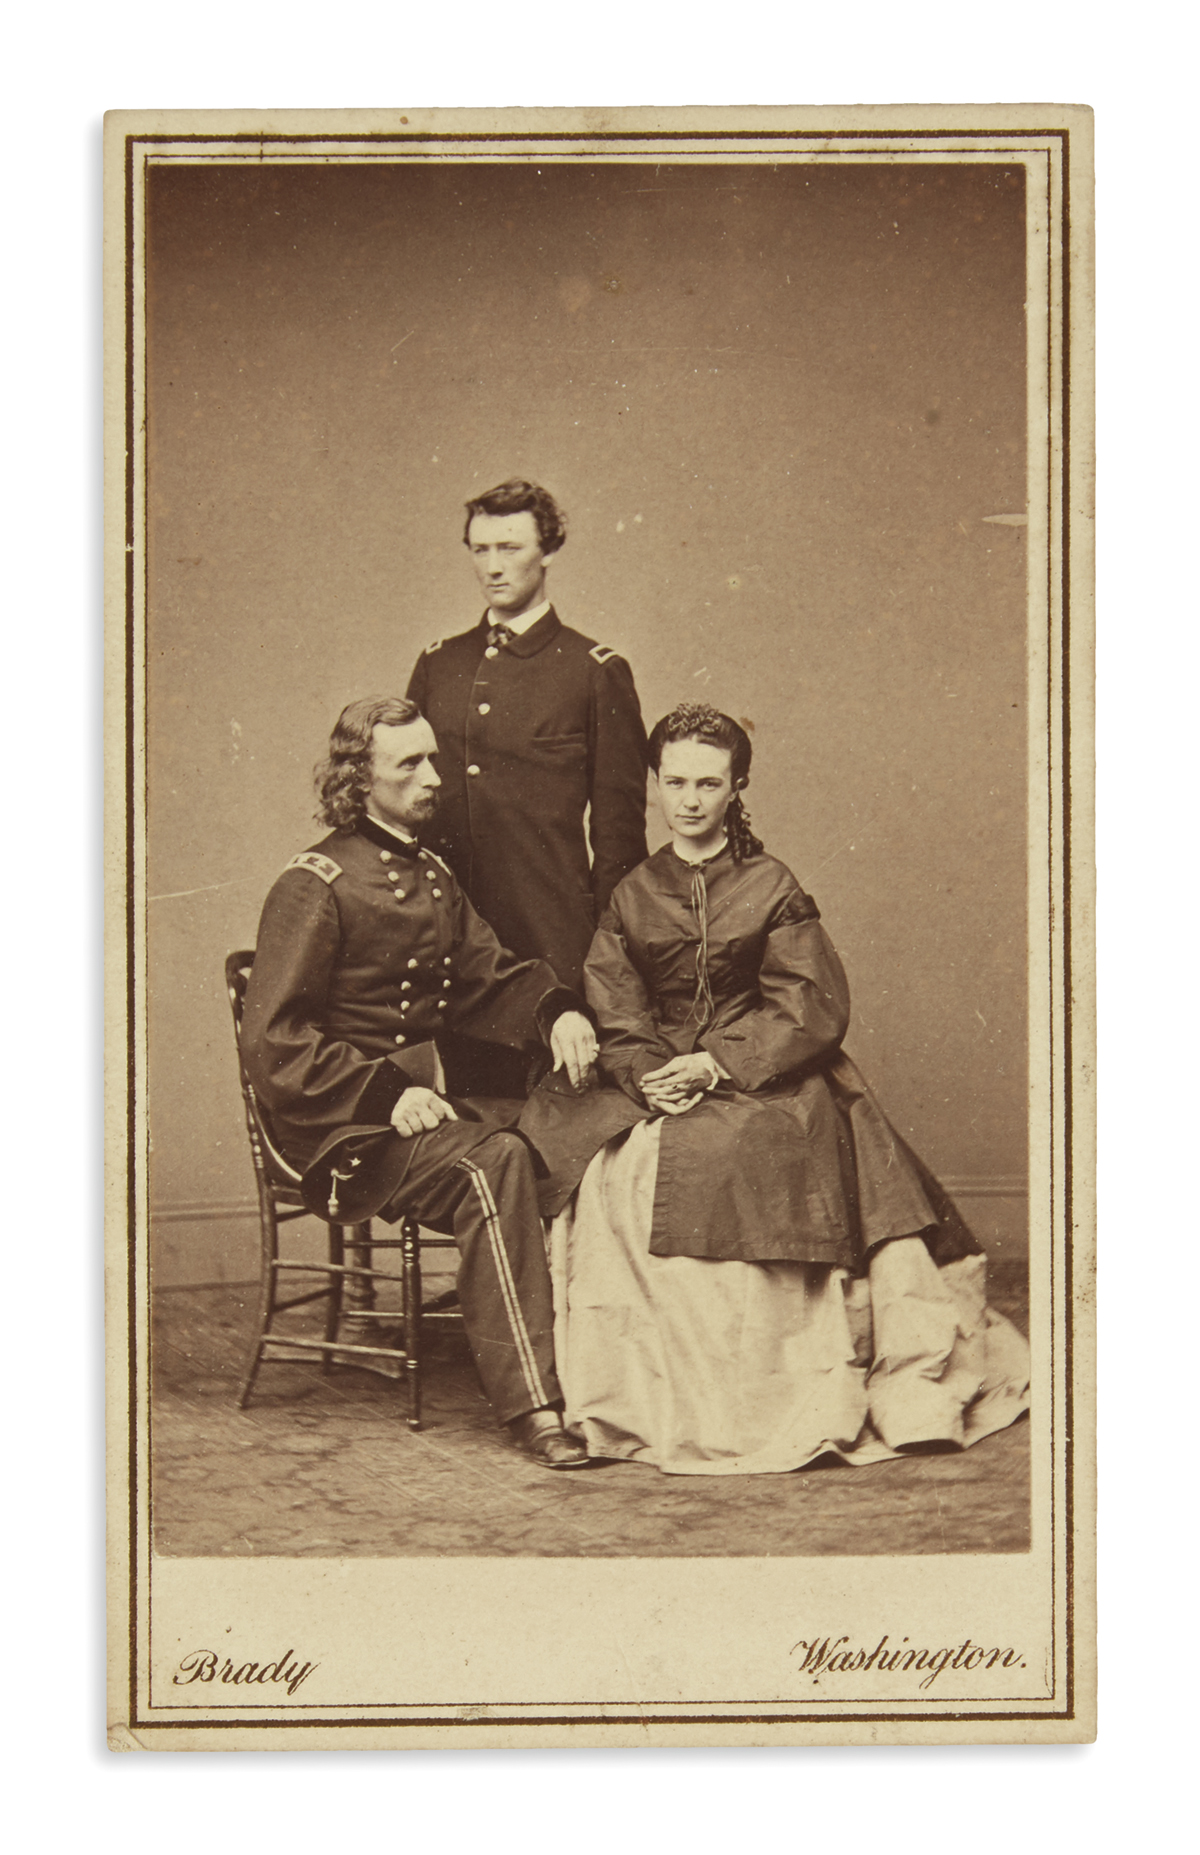 (CUSTER, GEORGE ARMSTRONG.) Carte-de-visite of Custer and family during the Civil War.